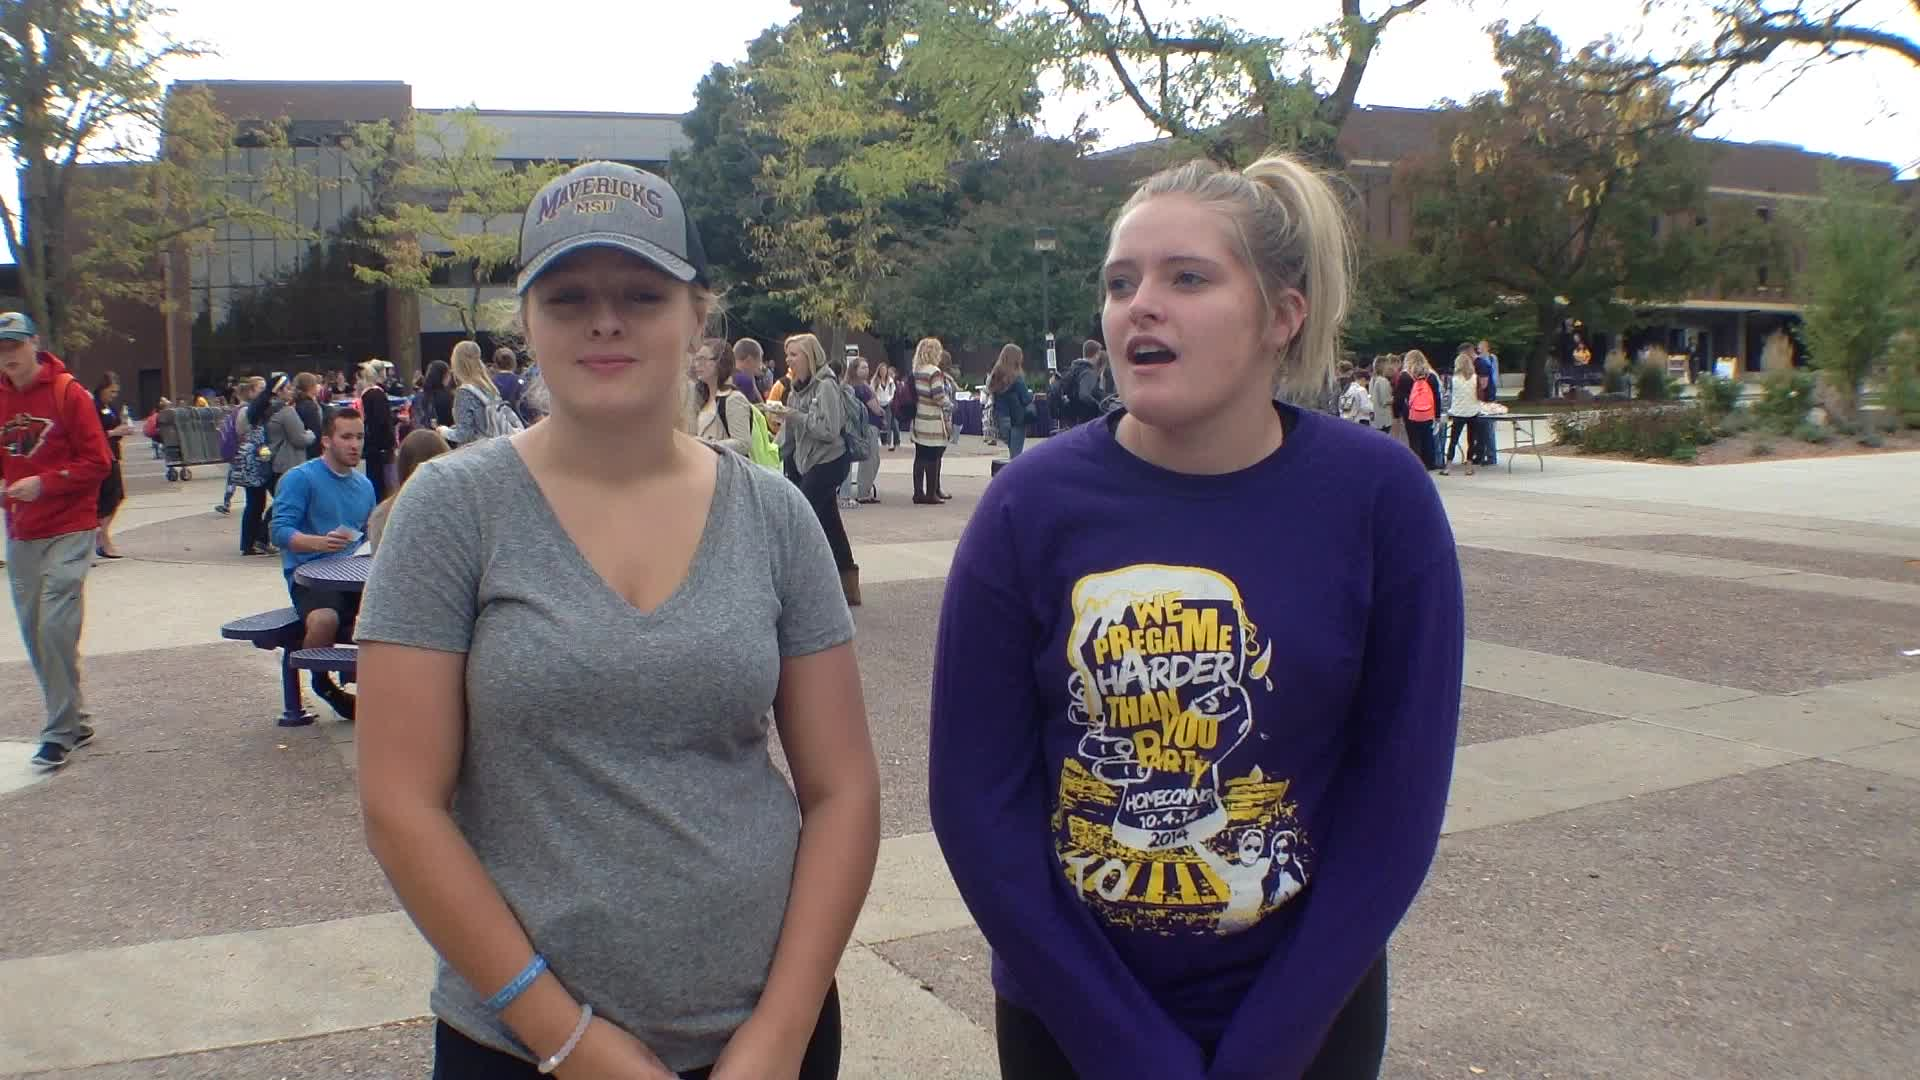 Bree Peterson, Mankato, MN and Miranda Kane, Onalaska, WI - Homecoming 2015 at Minnesota State University, Mankato